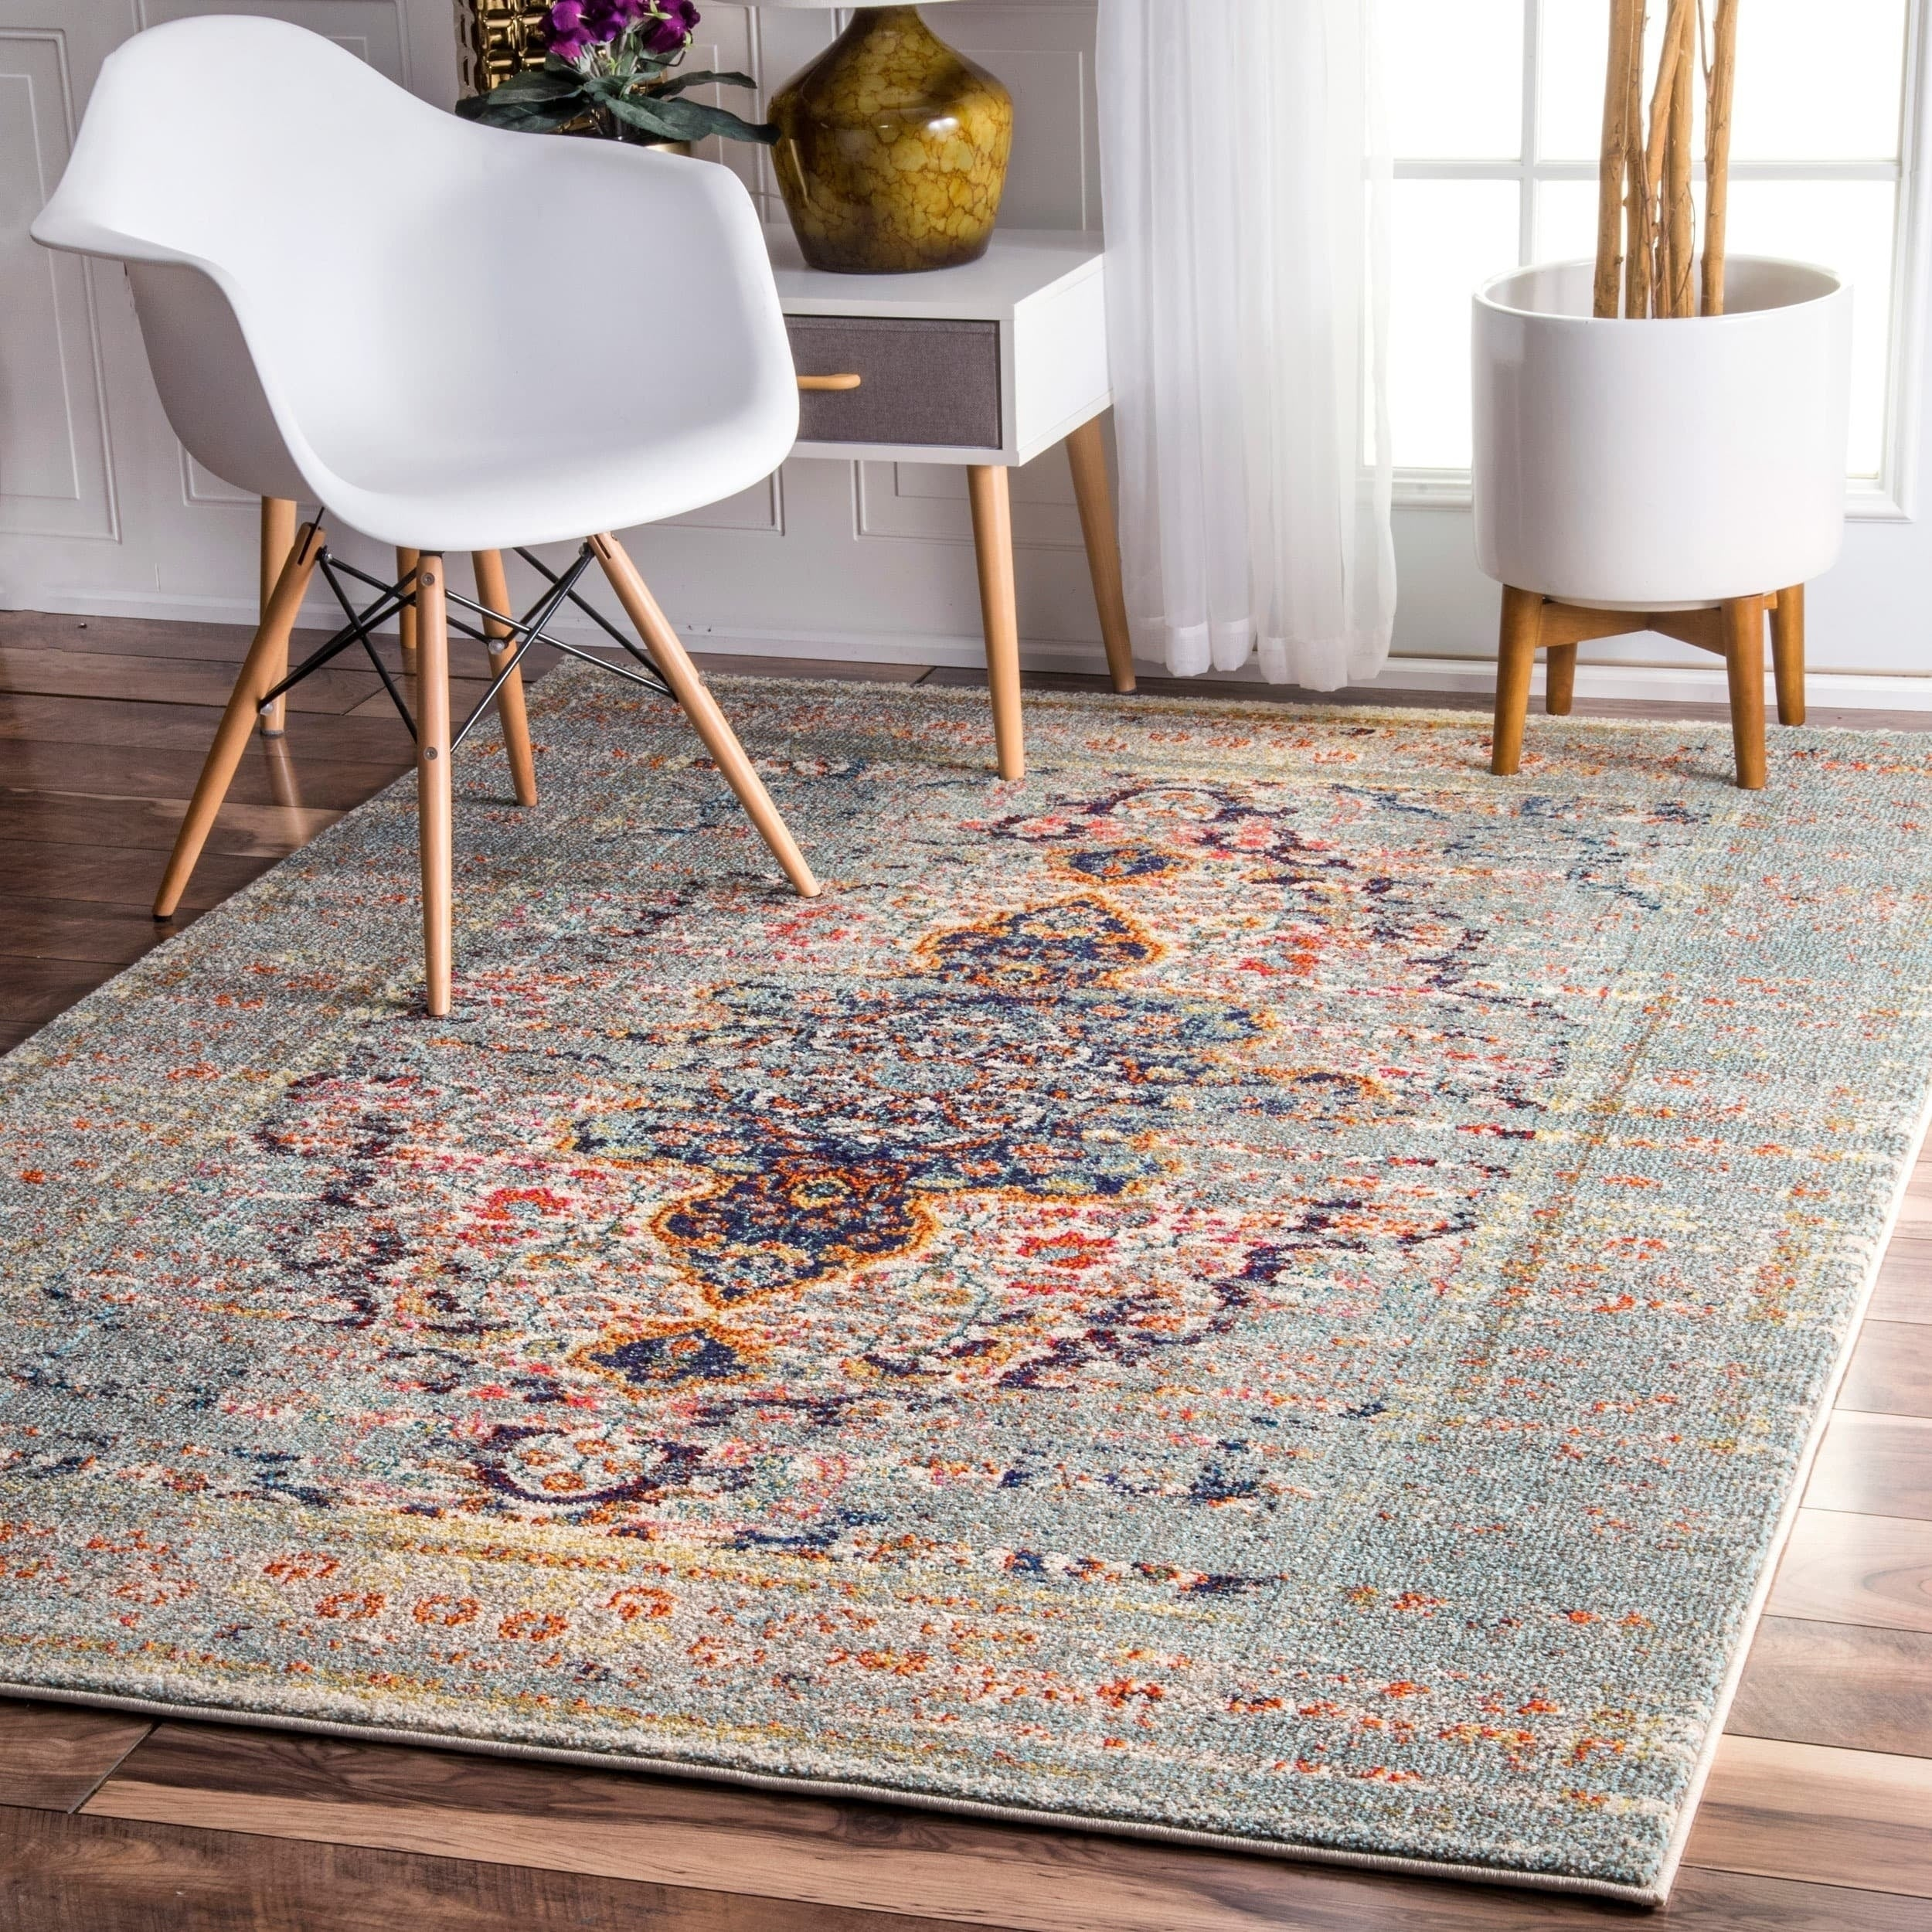 The Curated Nomad Granito Distressed Traditional Vintage Medallion Rug (6 7 x 9 Oval - Grey)